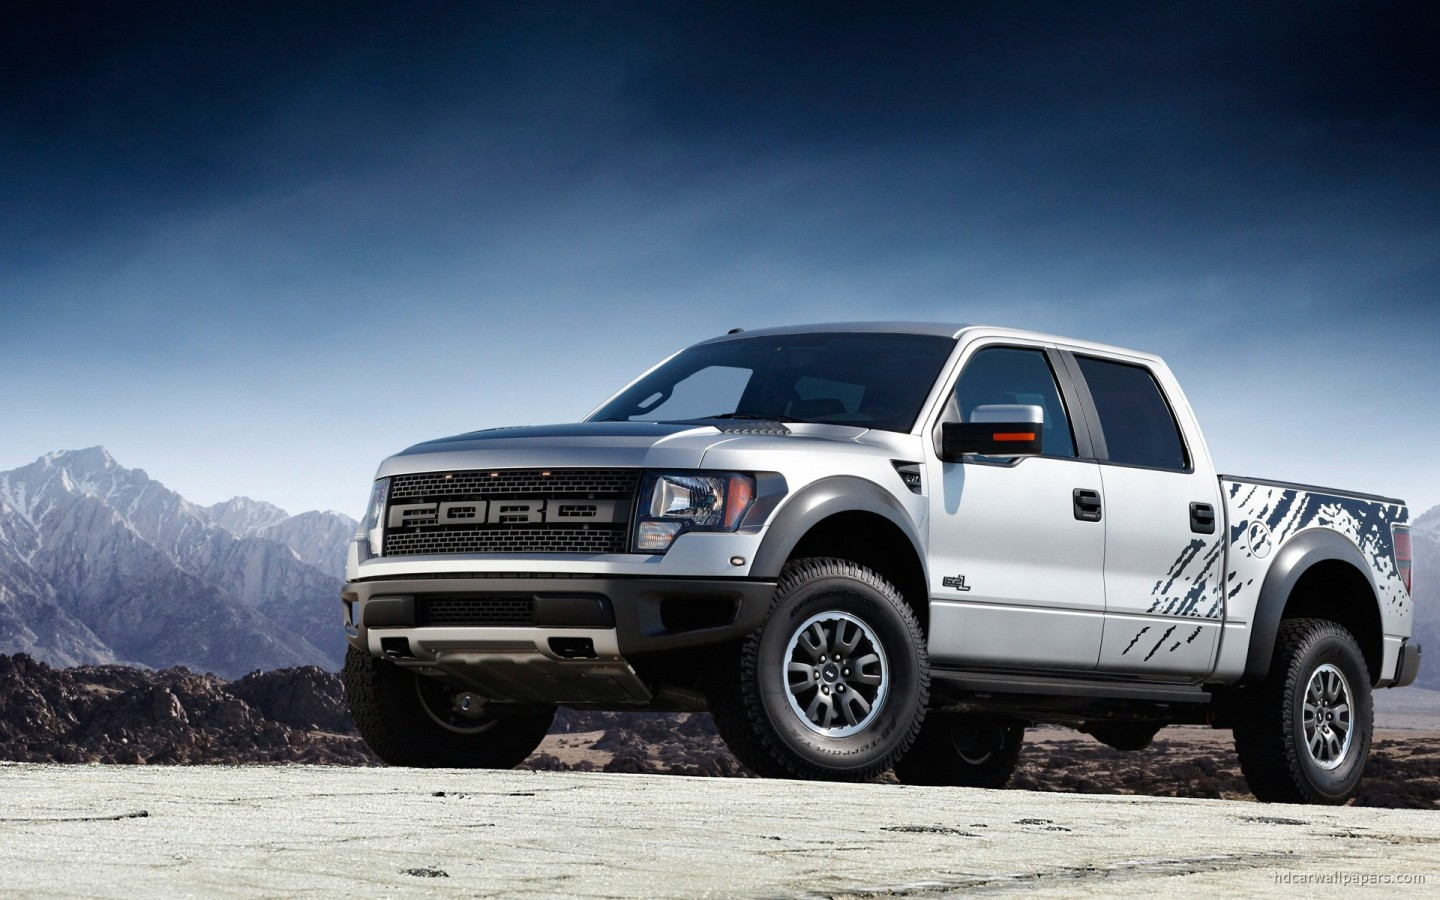 2011 ford f150 raptor wallpaper hd car wallpapers id 1871. Black Bedroom Furniture Sets. Home Design Ideas